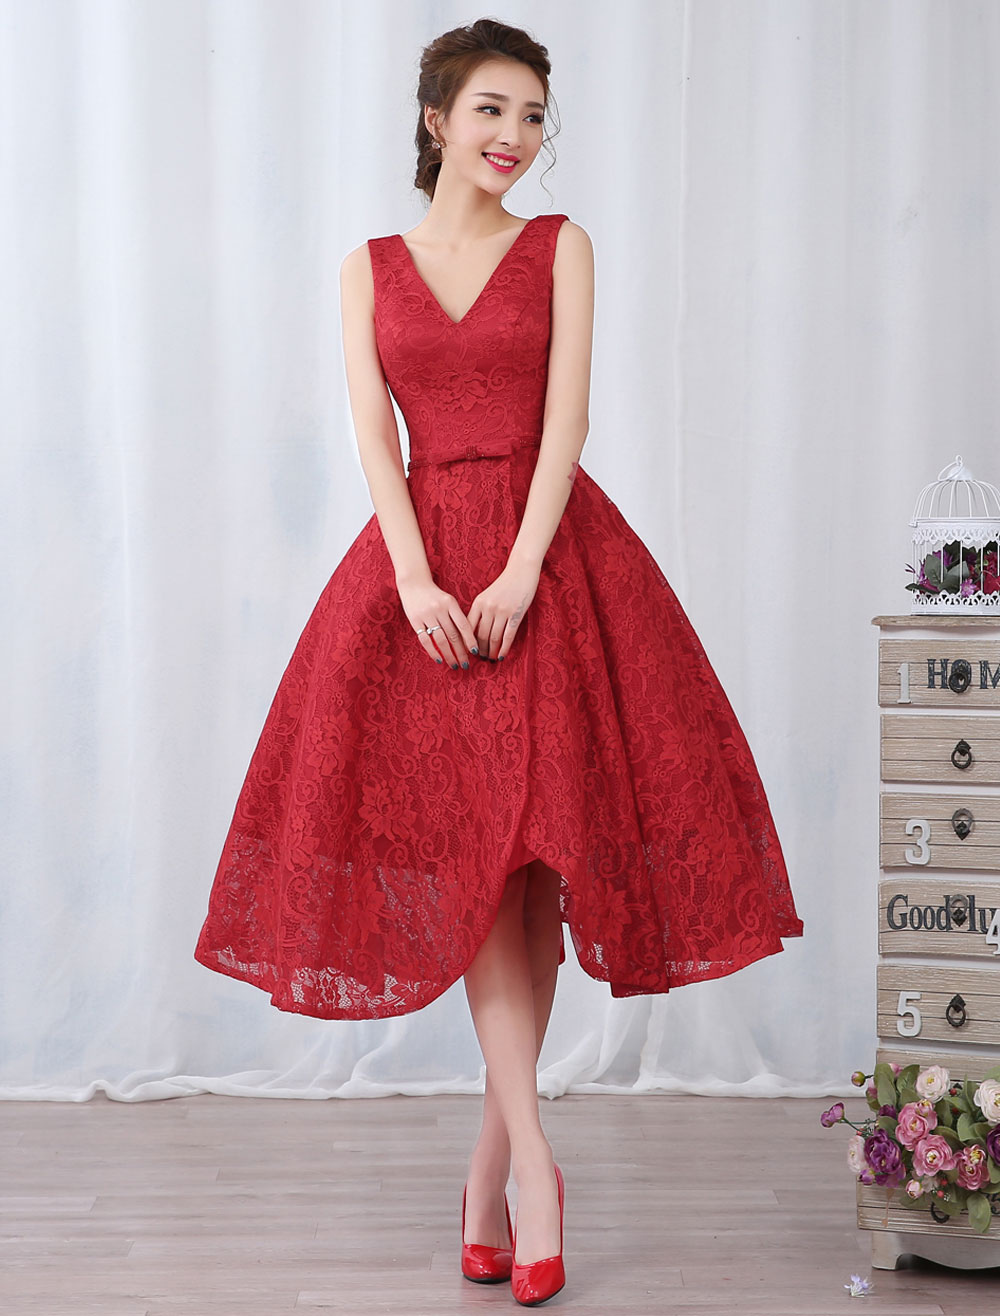 Red Cocktail Dresses Lace V Neck Short Prom Dress Bow Sash Backless Tea Length Party Dresses (Wedding Cheap Party Dress) photo